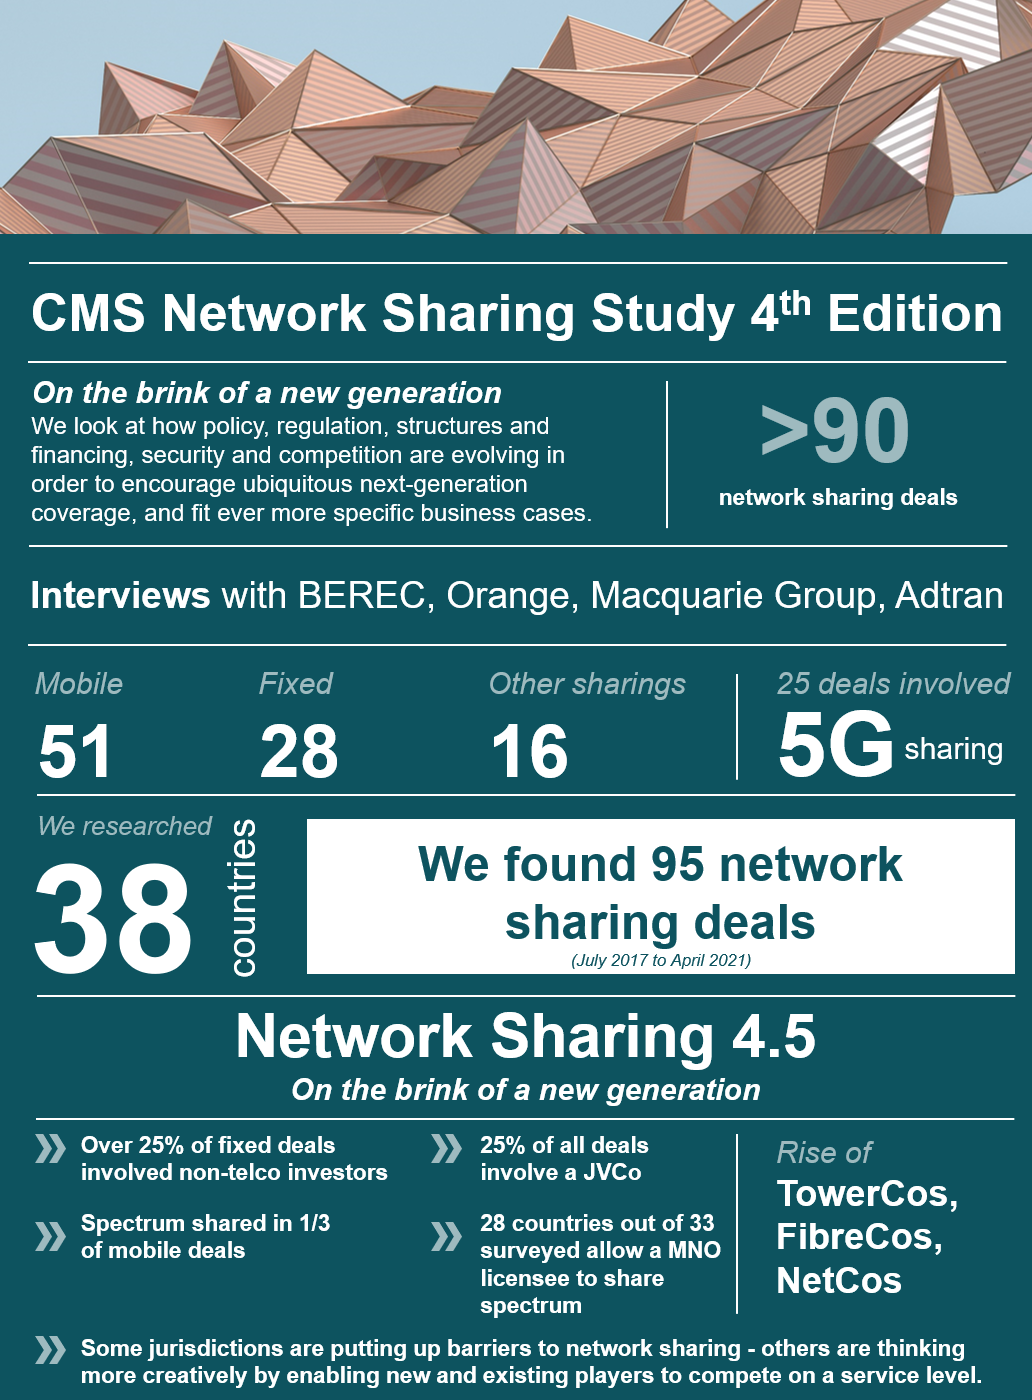 CMS Network sharing at a glance infographic